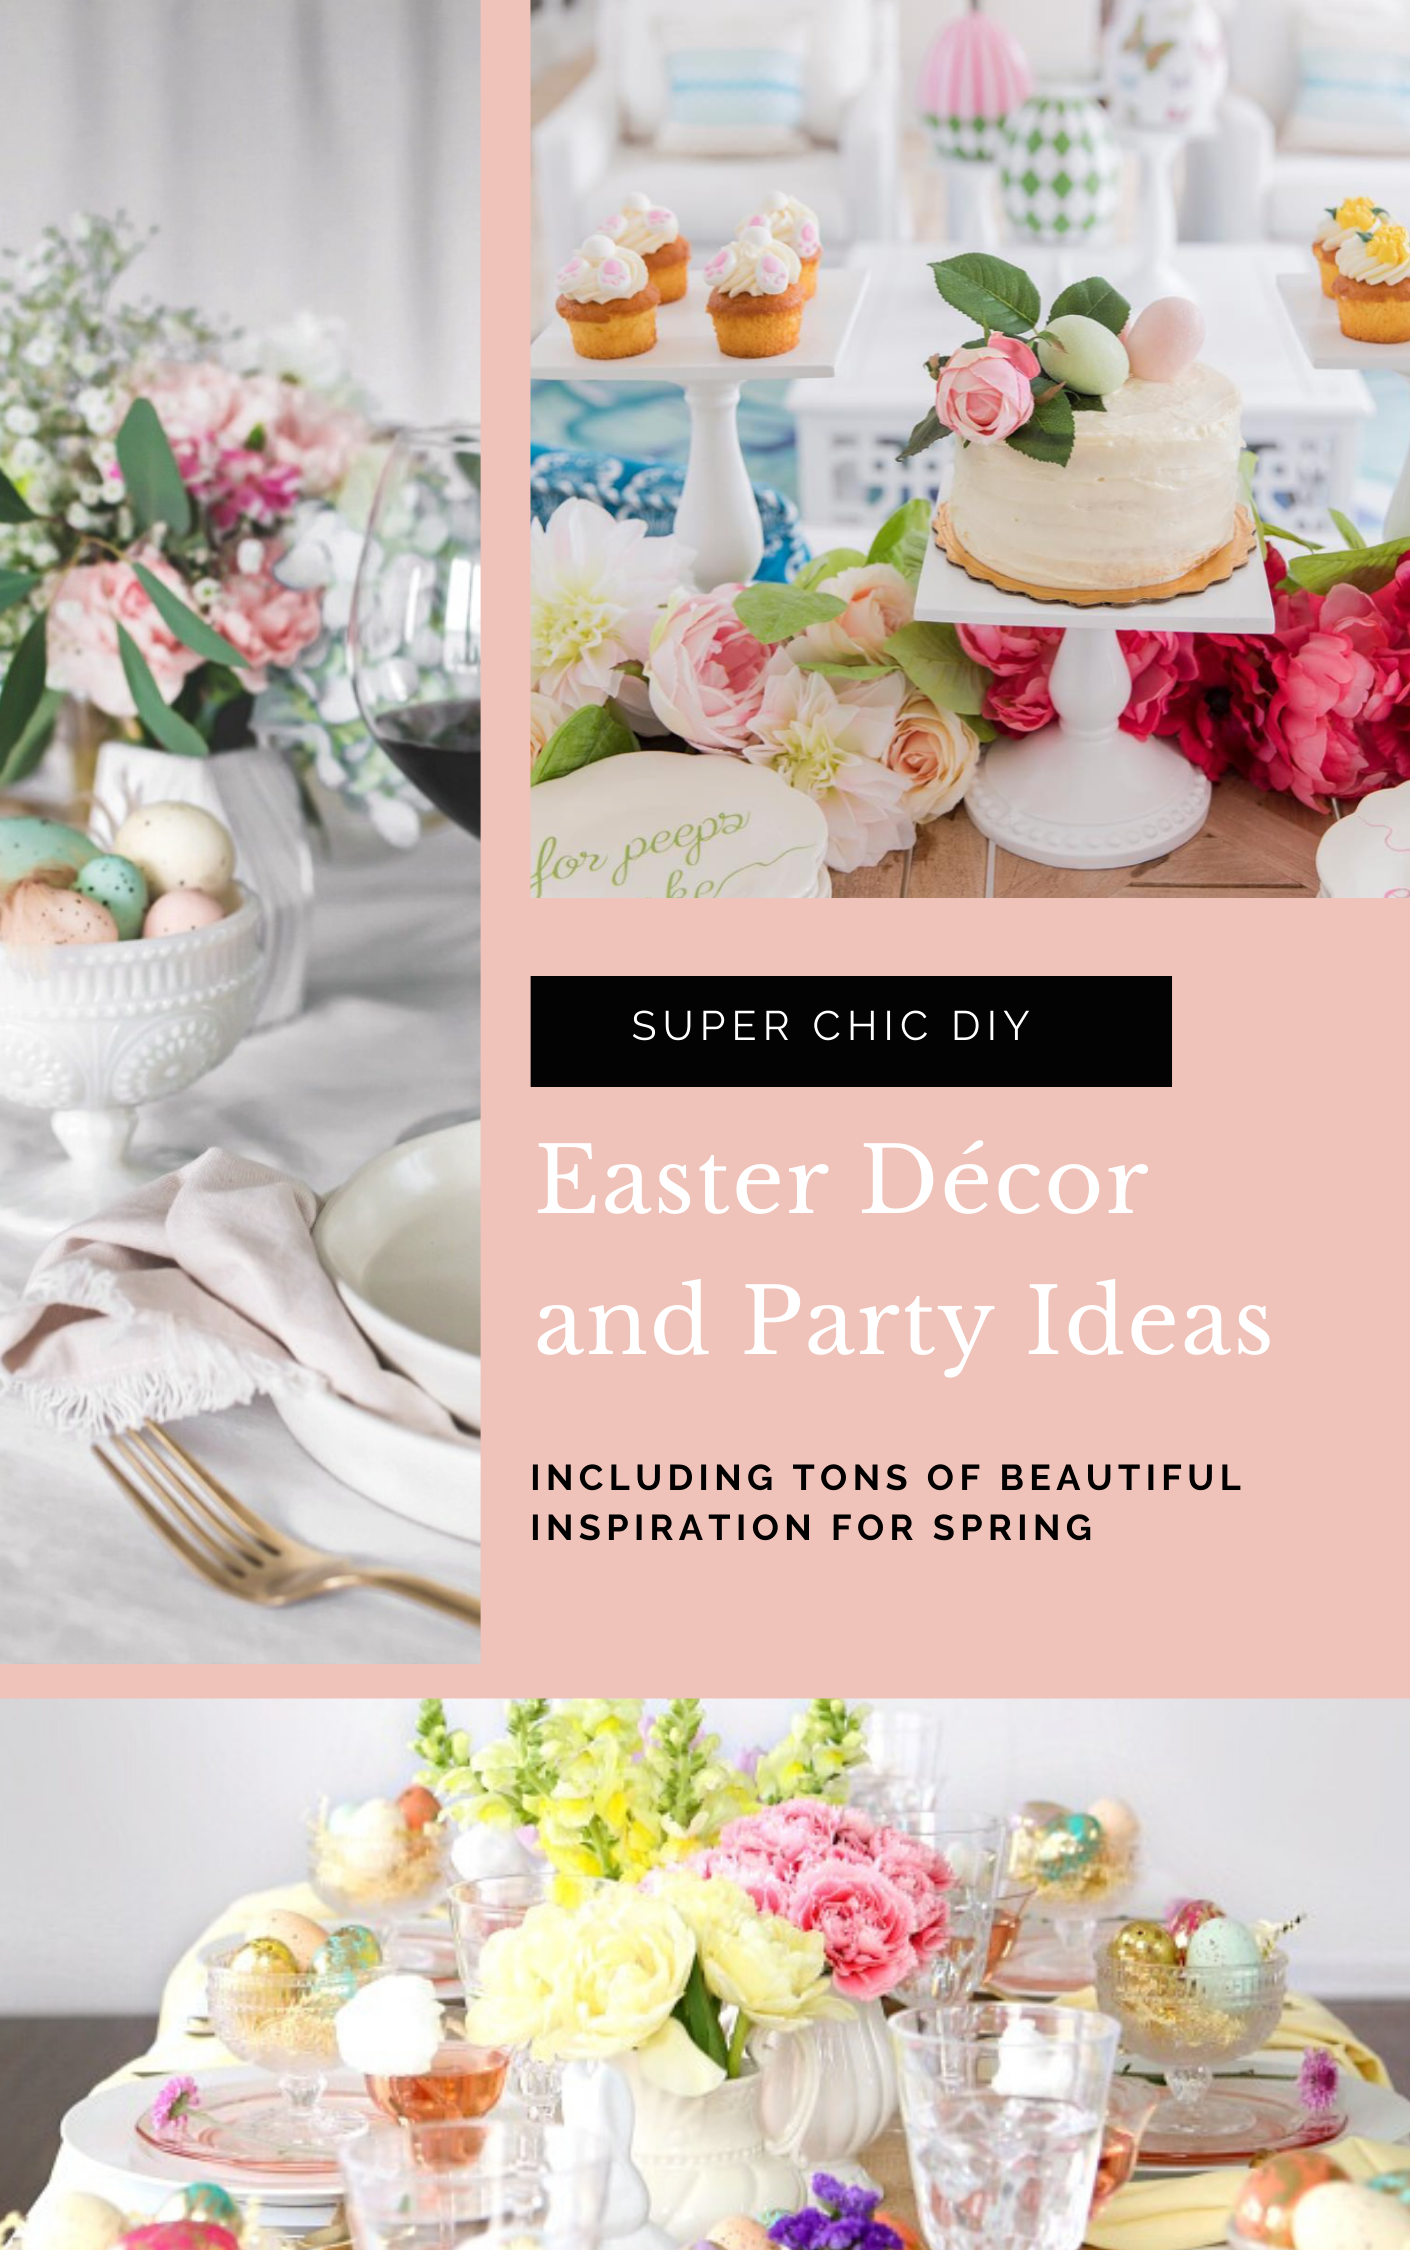 Celebrate Easter this season with the chicest DIY Easter décor and inspiration for the sweetest Easter parties! | glitterinc.com | @glitterinc